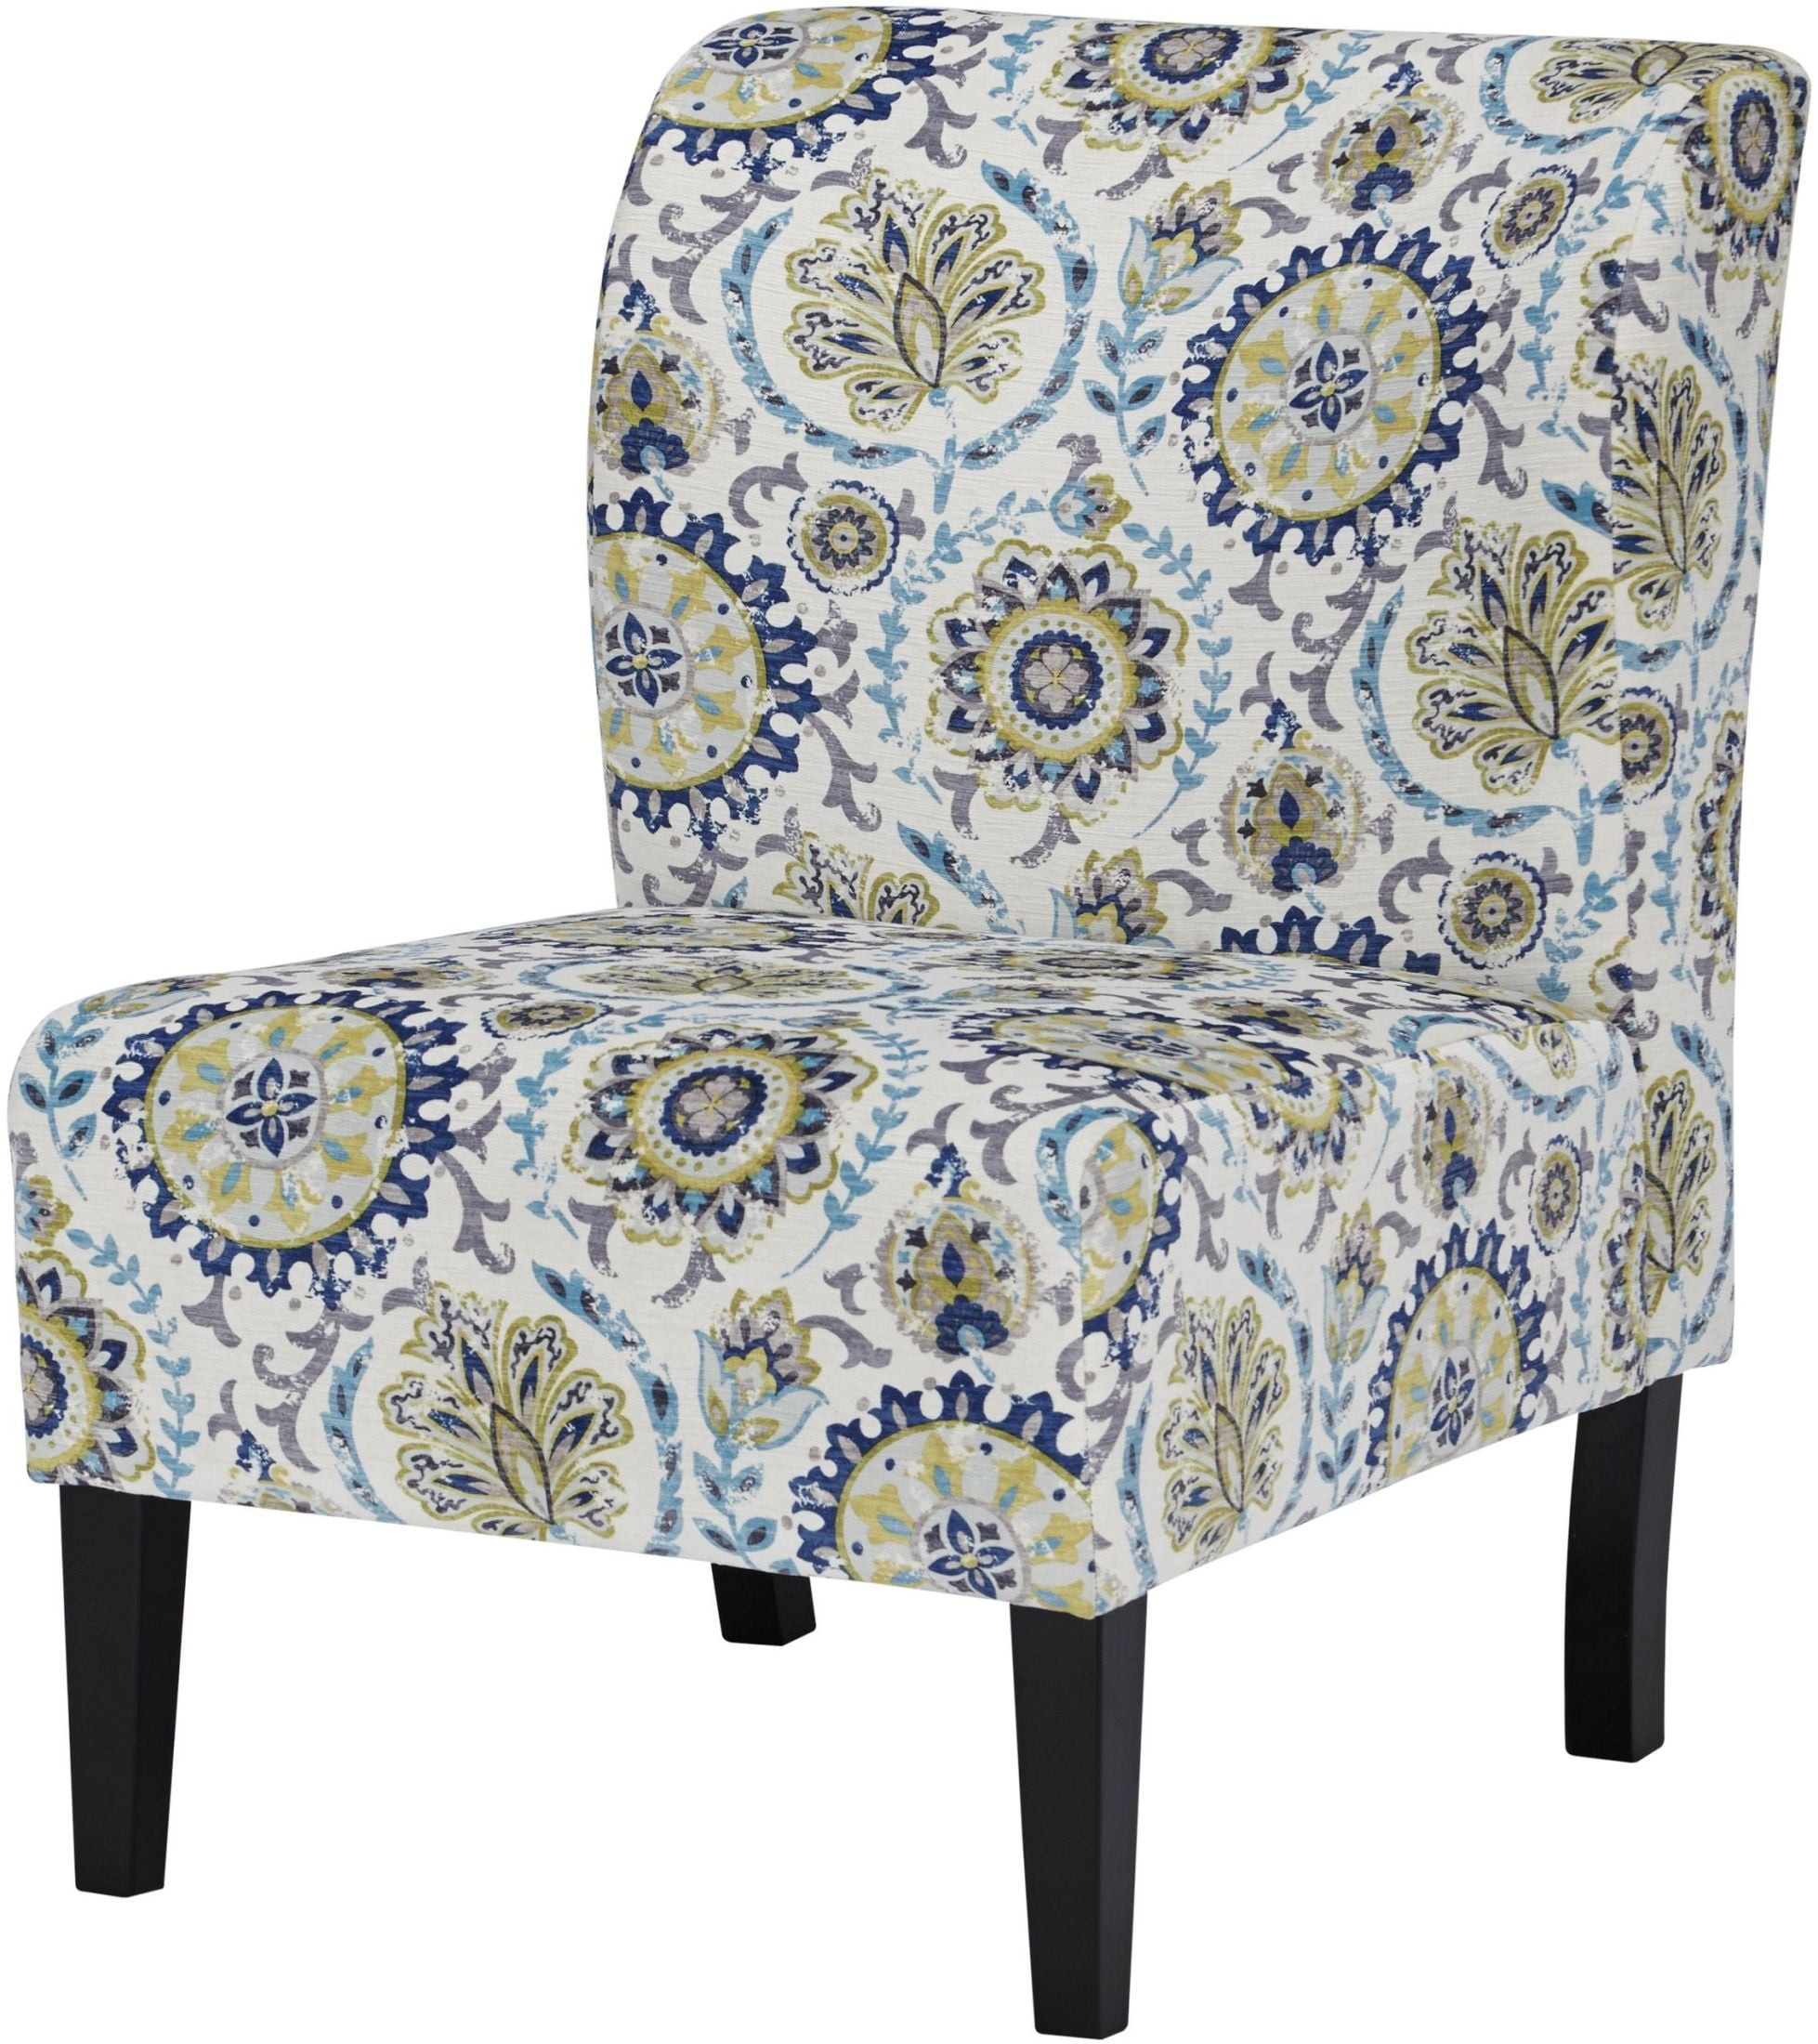 Triptis Blue and Green Accent Chair from Ashley  Coleman